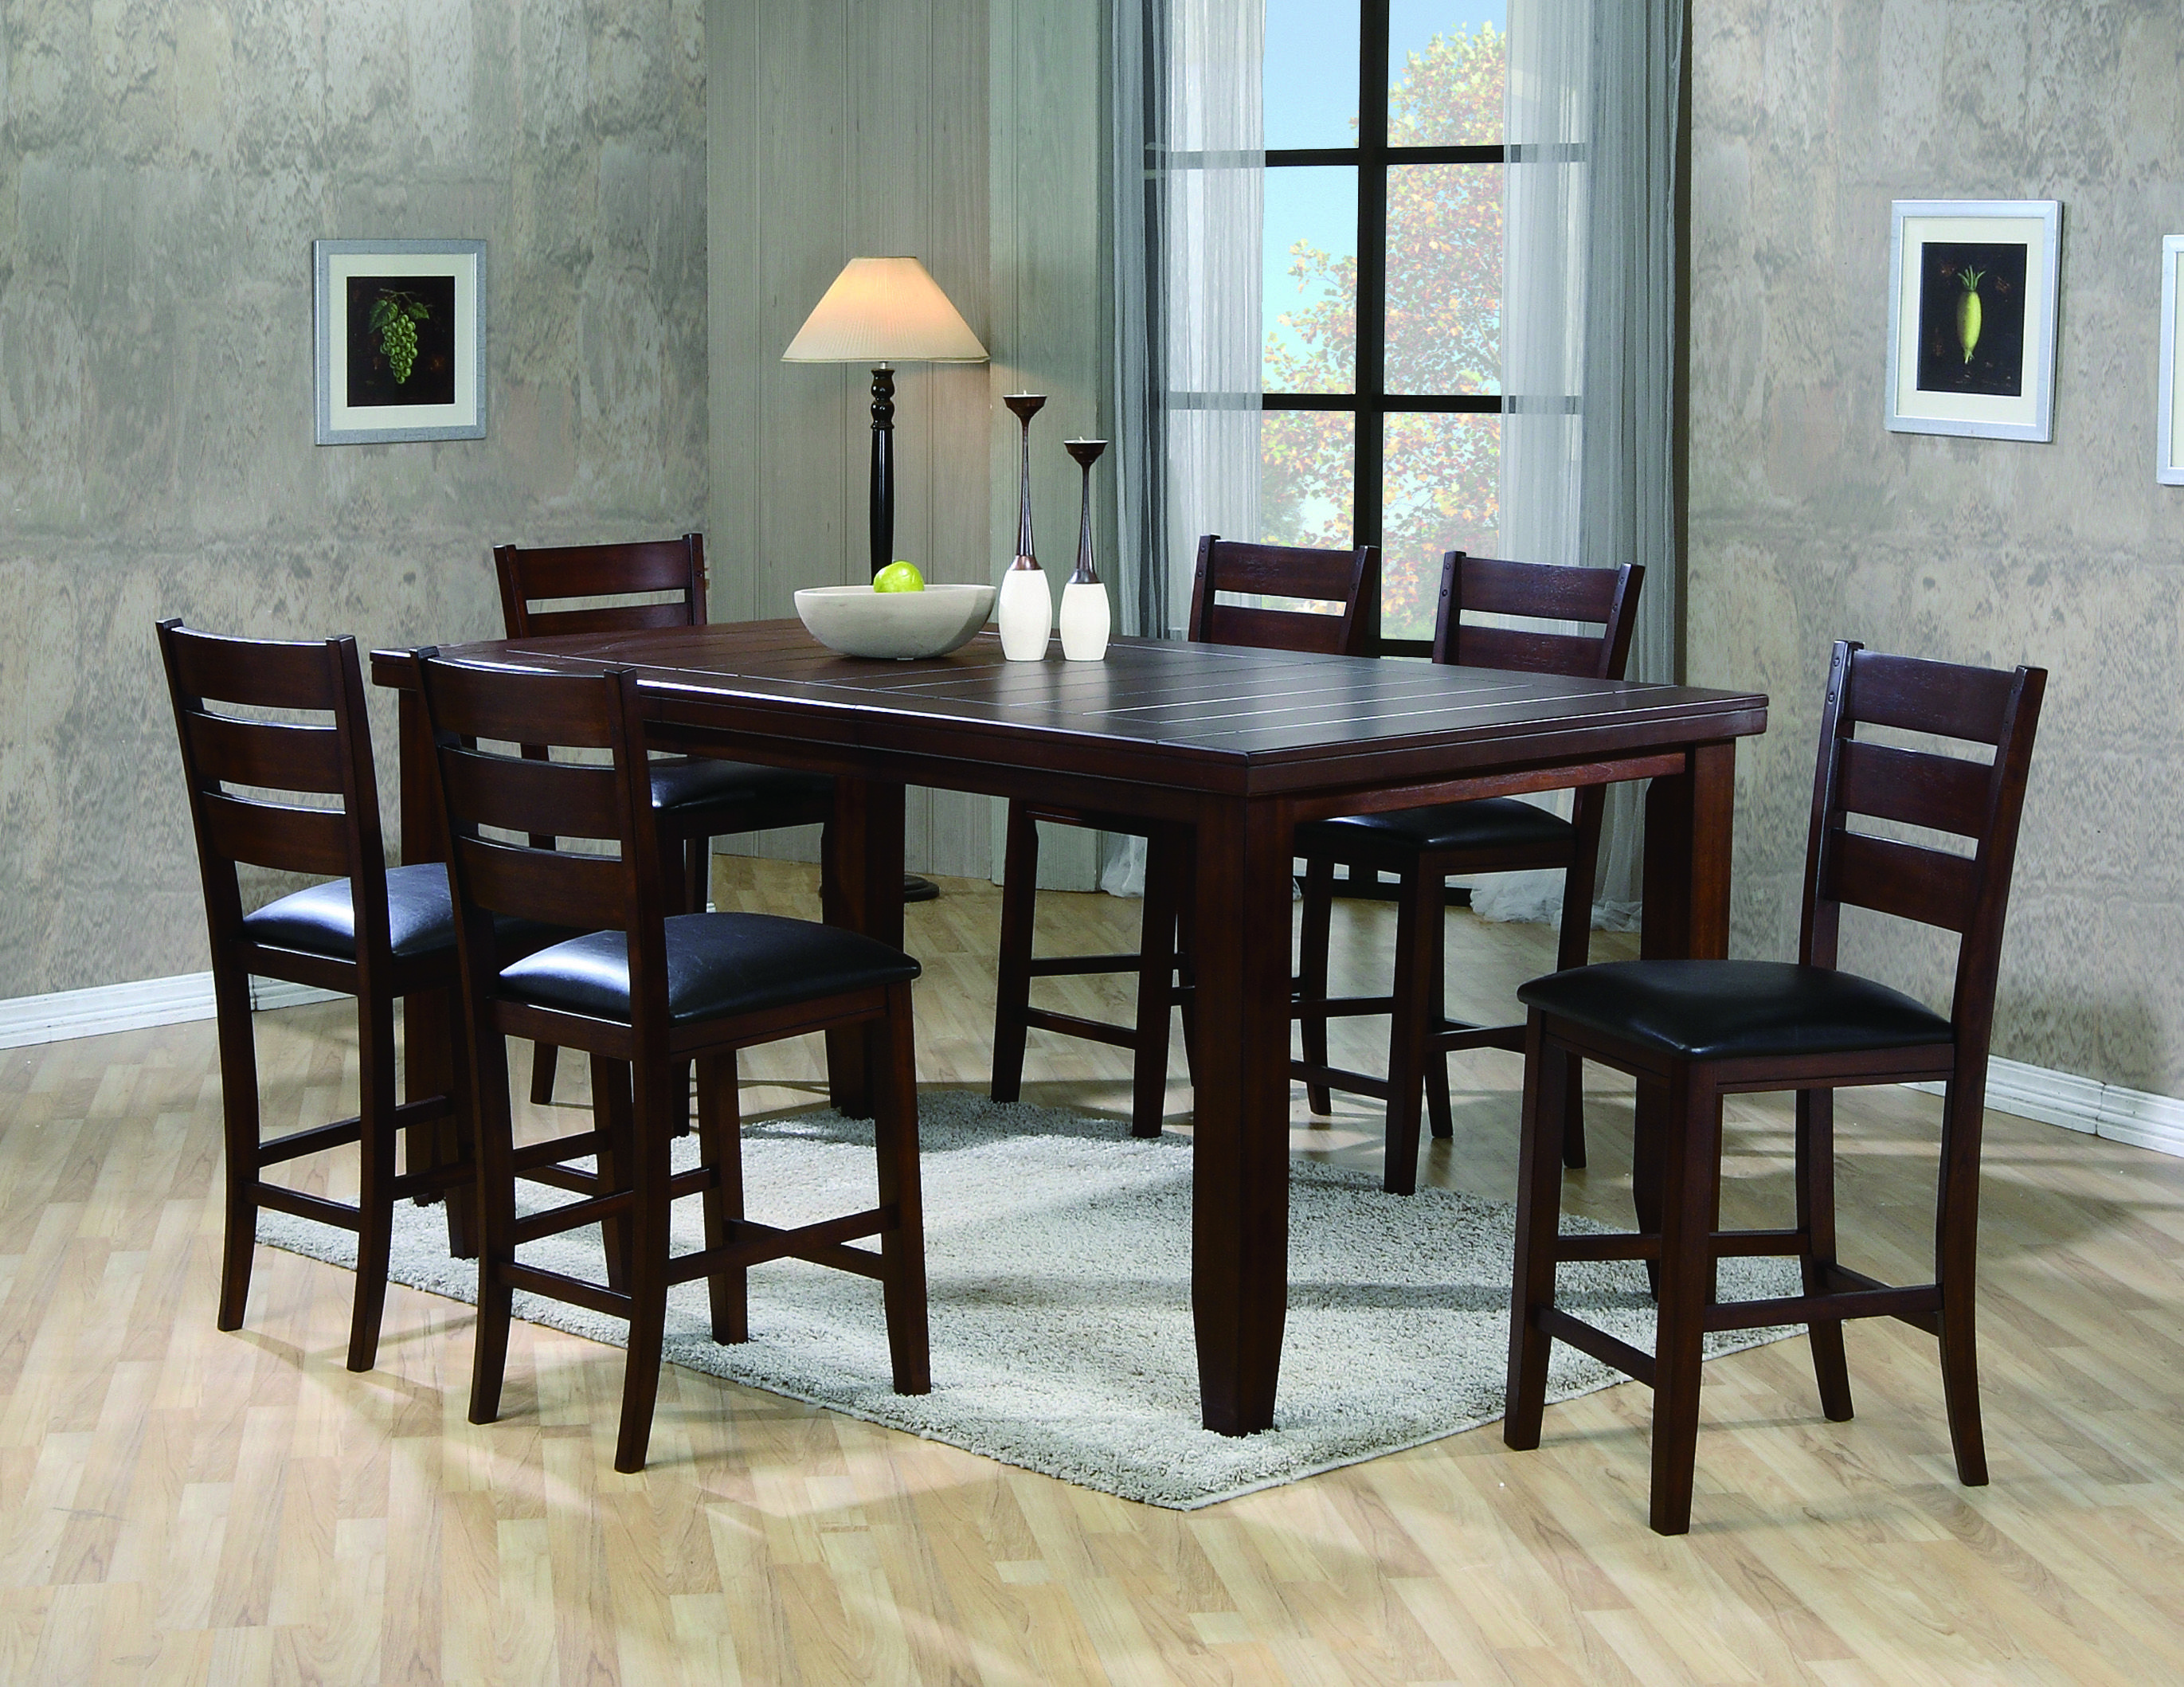 Bardstow 2752 Counter Height Table And 6 Stools Kitchen Table Settings High Top Dining Table Counter Height Dining Table Set